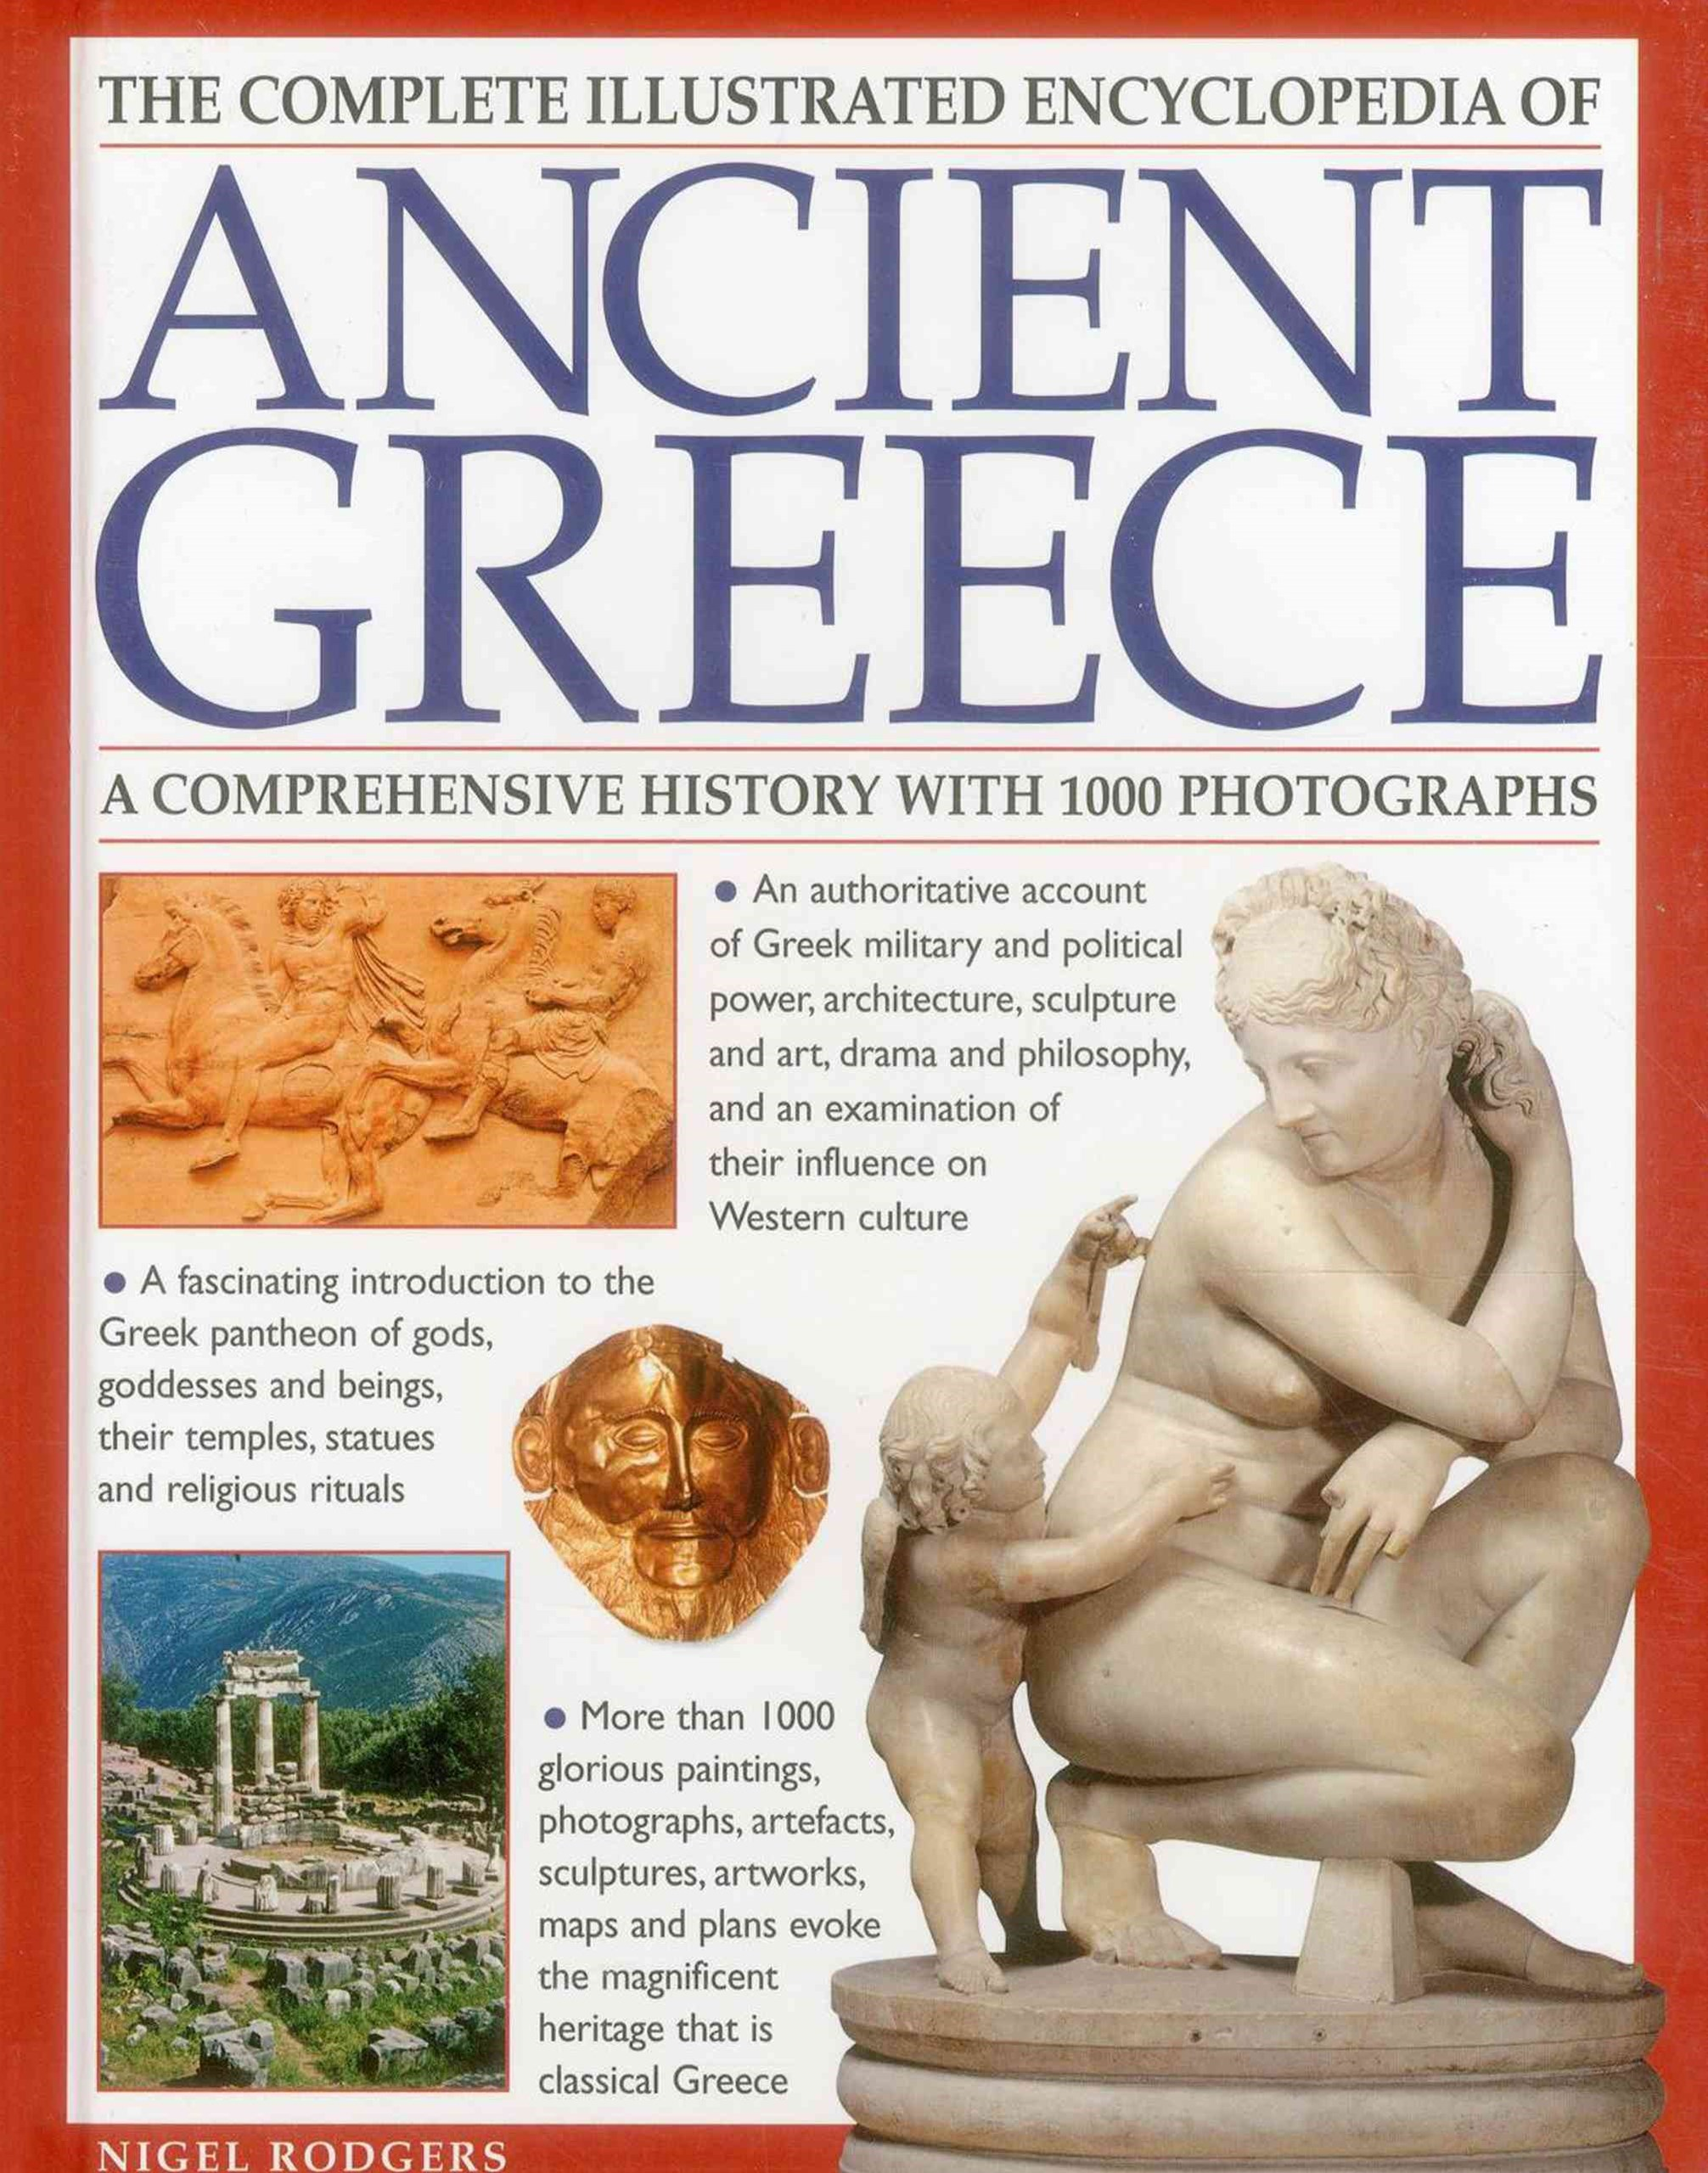 Complete Illustrated Encyclopedia of Ancient Greece